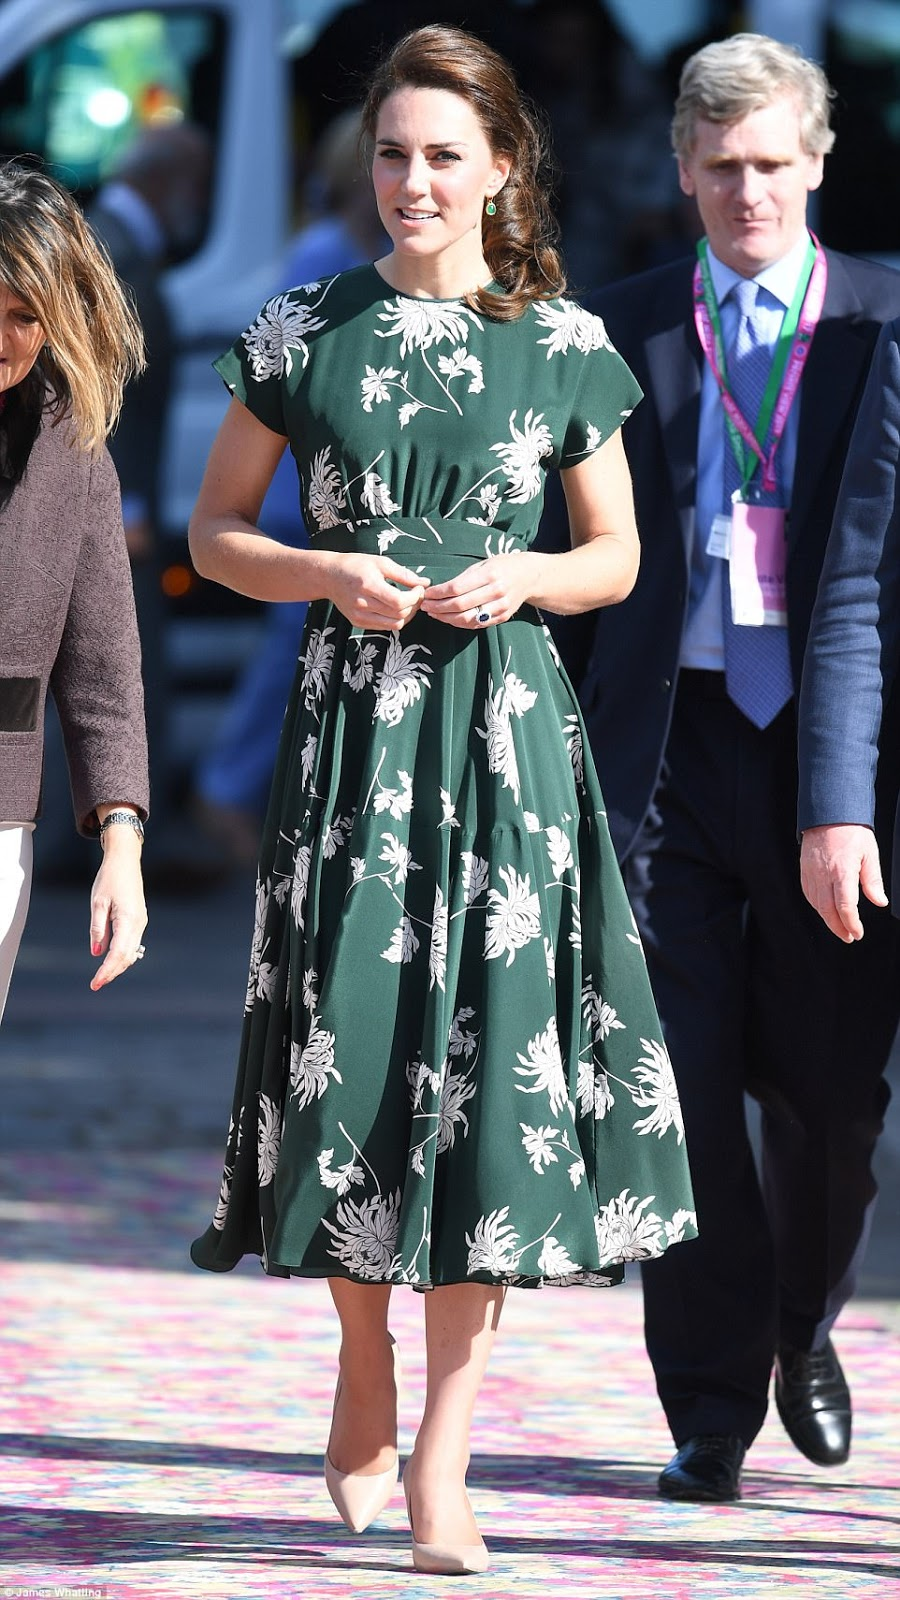 Kate looked stunning in a midi length £1,500 green dress with a white floral print by Rochas